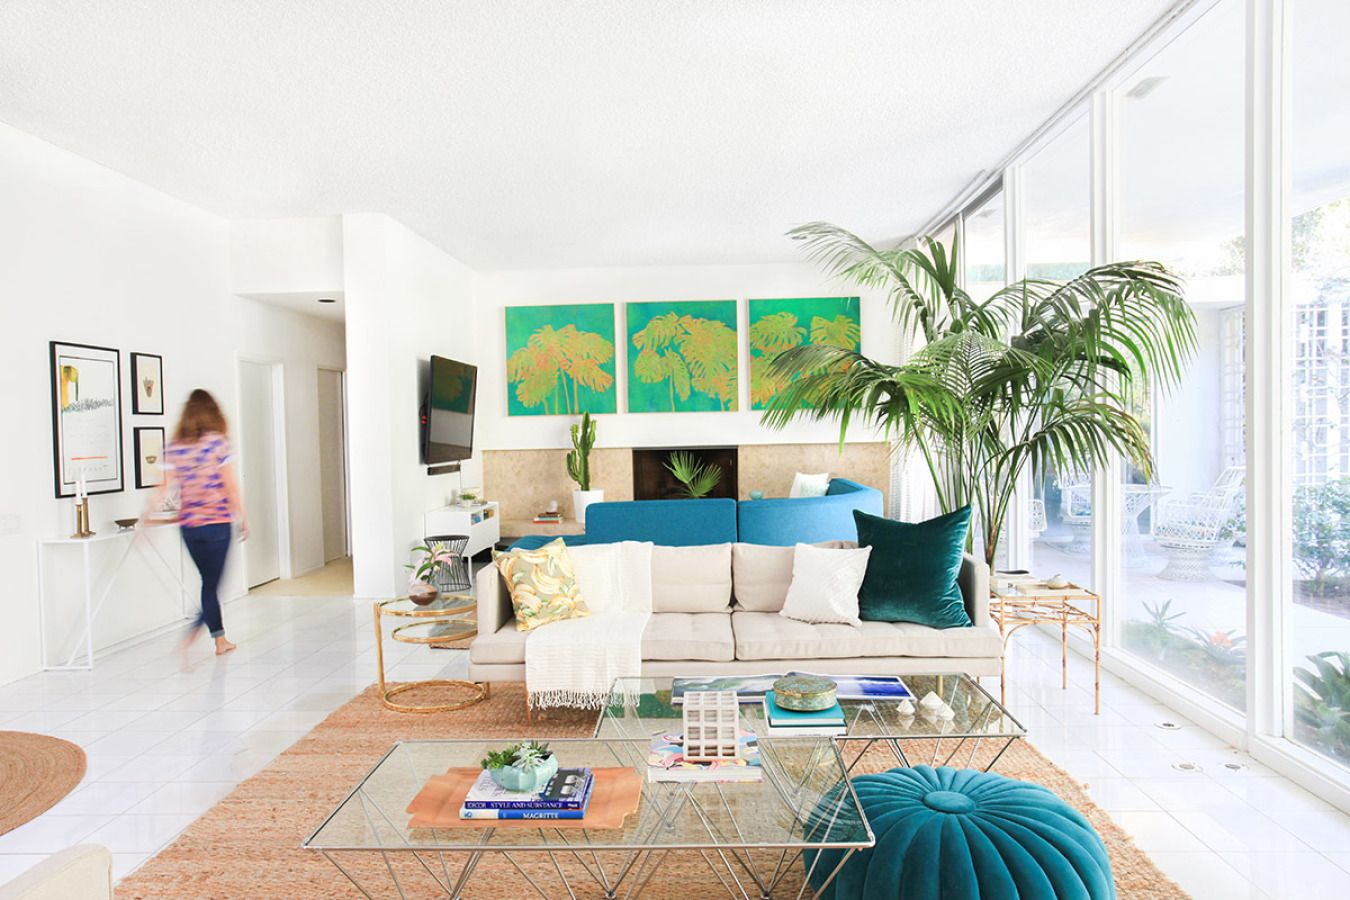 Mid-century furnishings and cool pops of color make this bright home feel like Palm Springs in its prime.